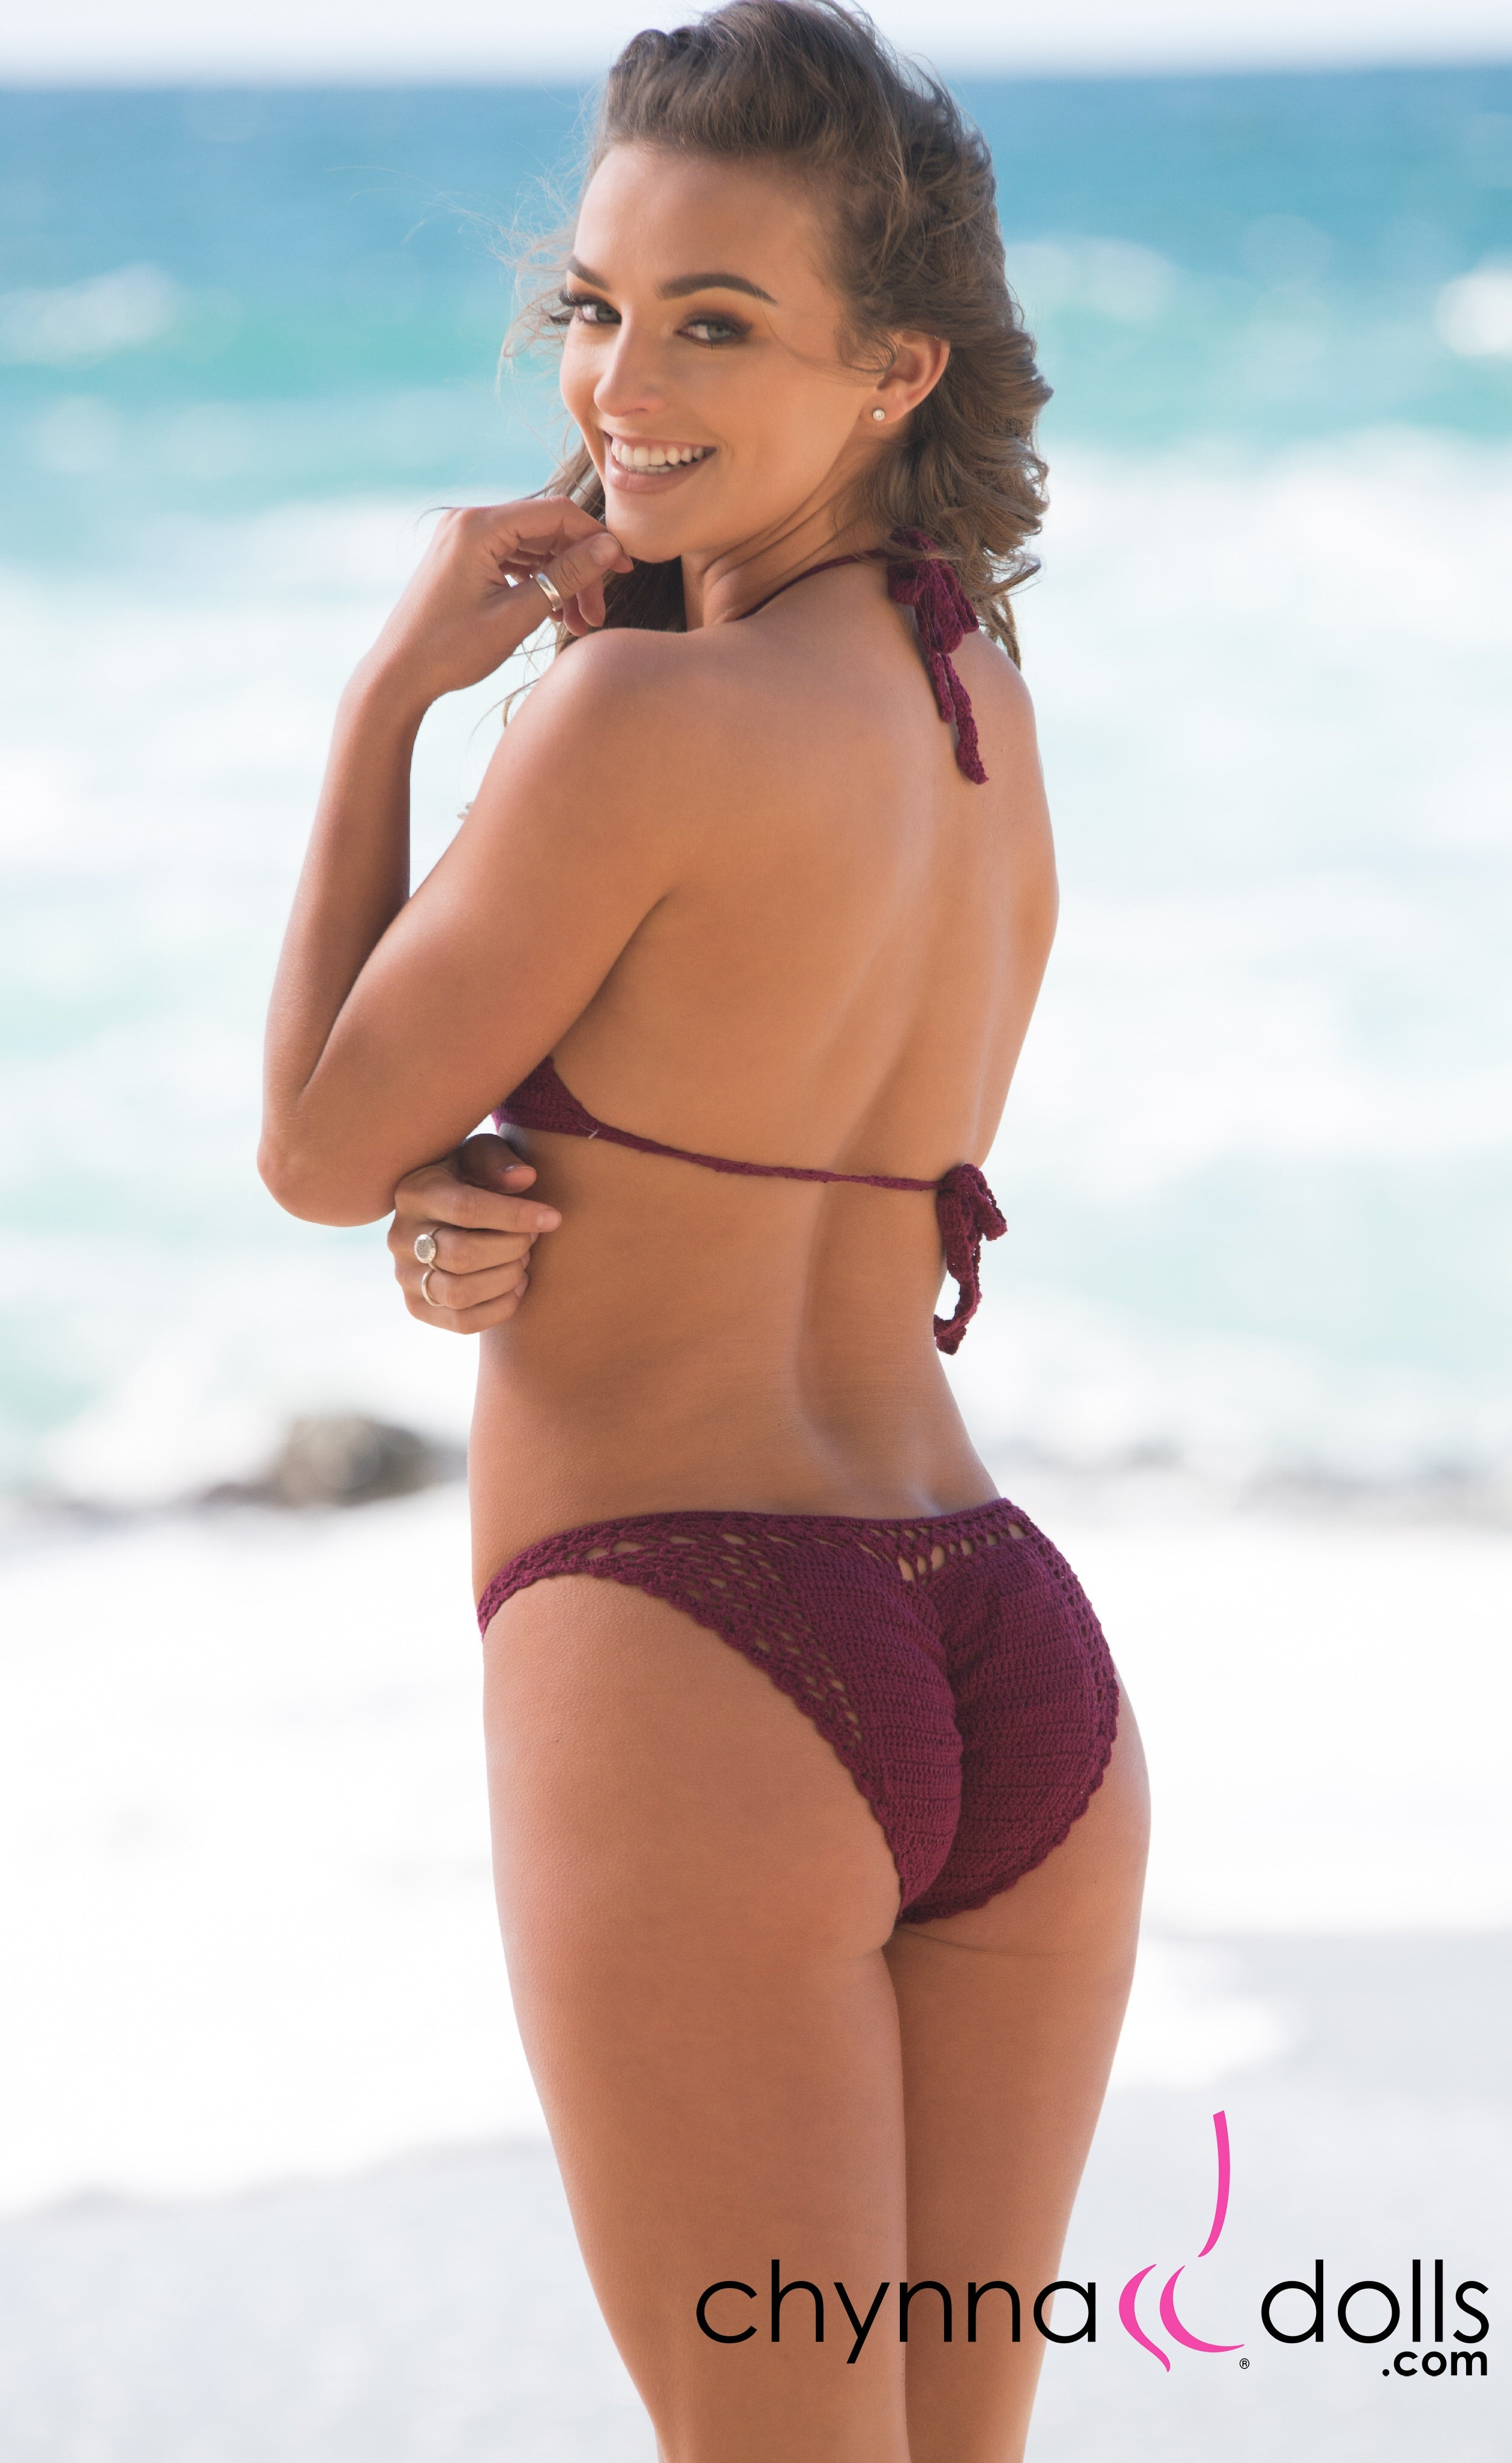 Acapulco: Crochet One Piece in Burgundy - Chynna Dolls Swimwear